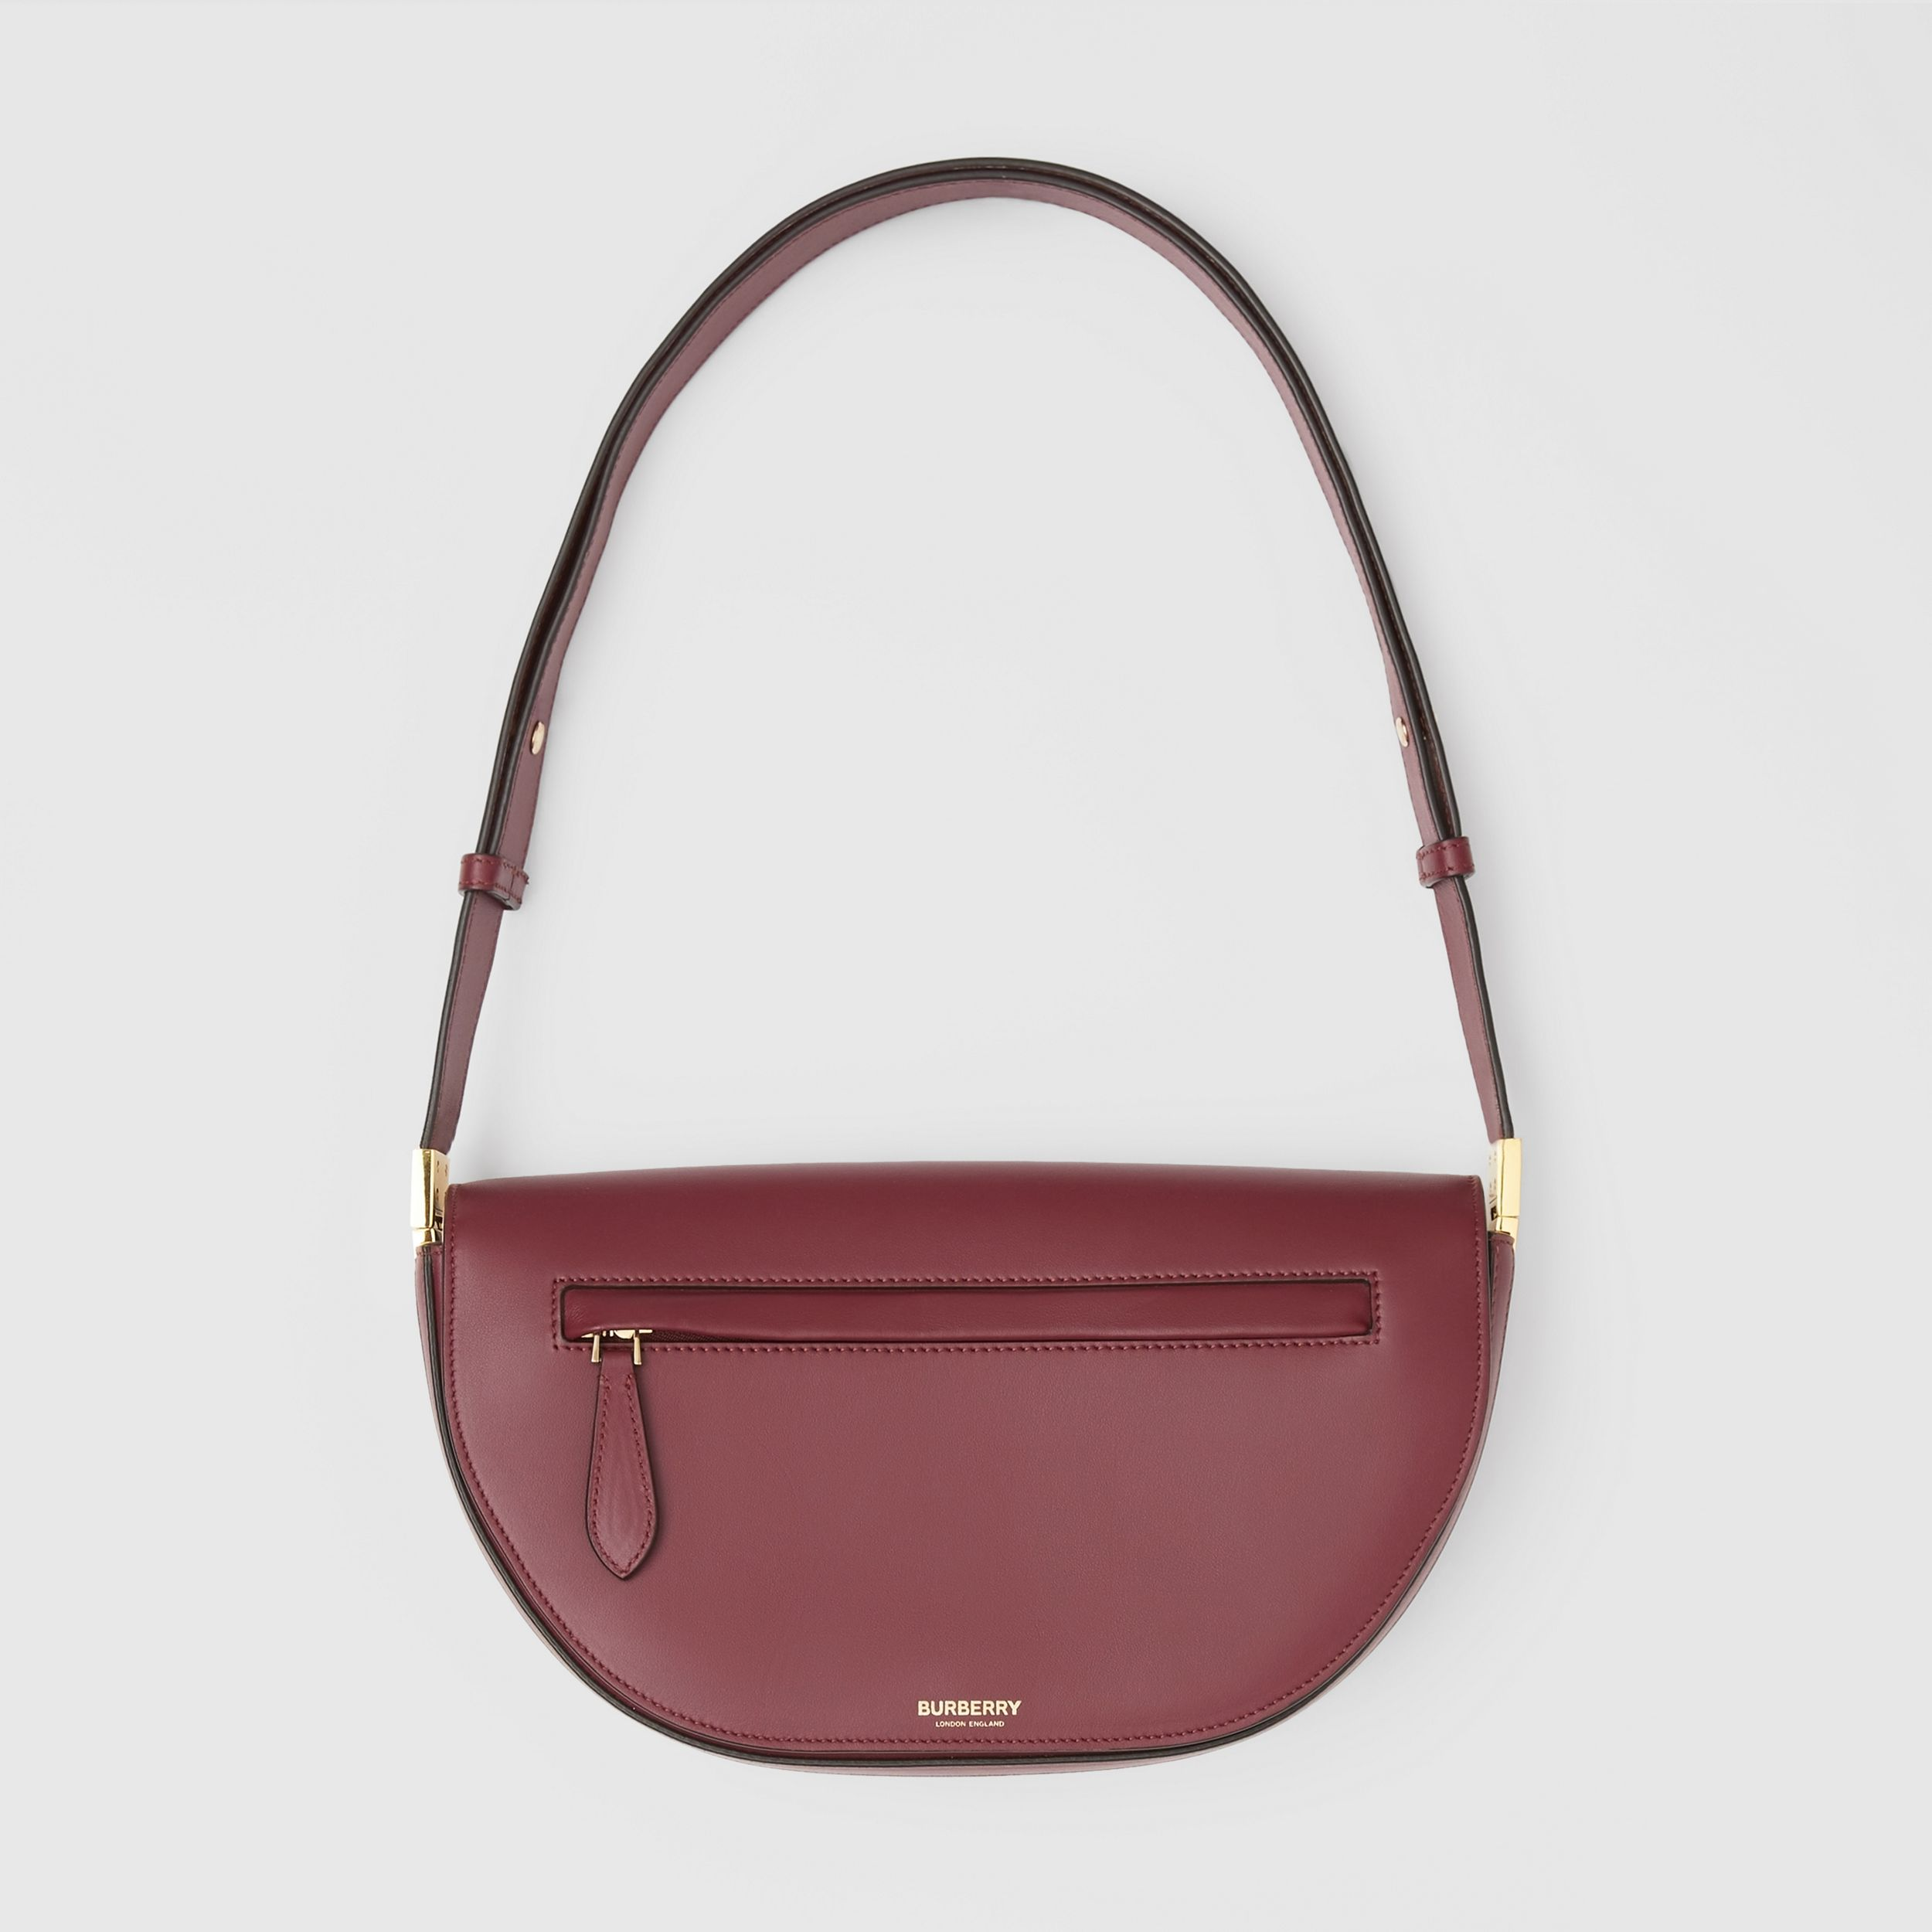 Small Leather Olympia Bag in Burgundy | Burberry Australia - 1